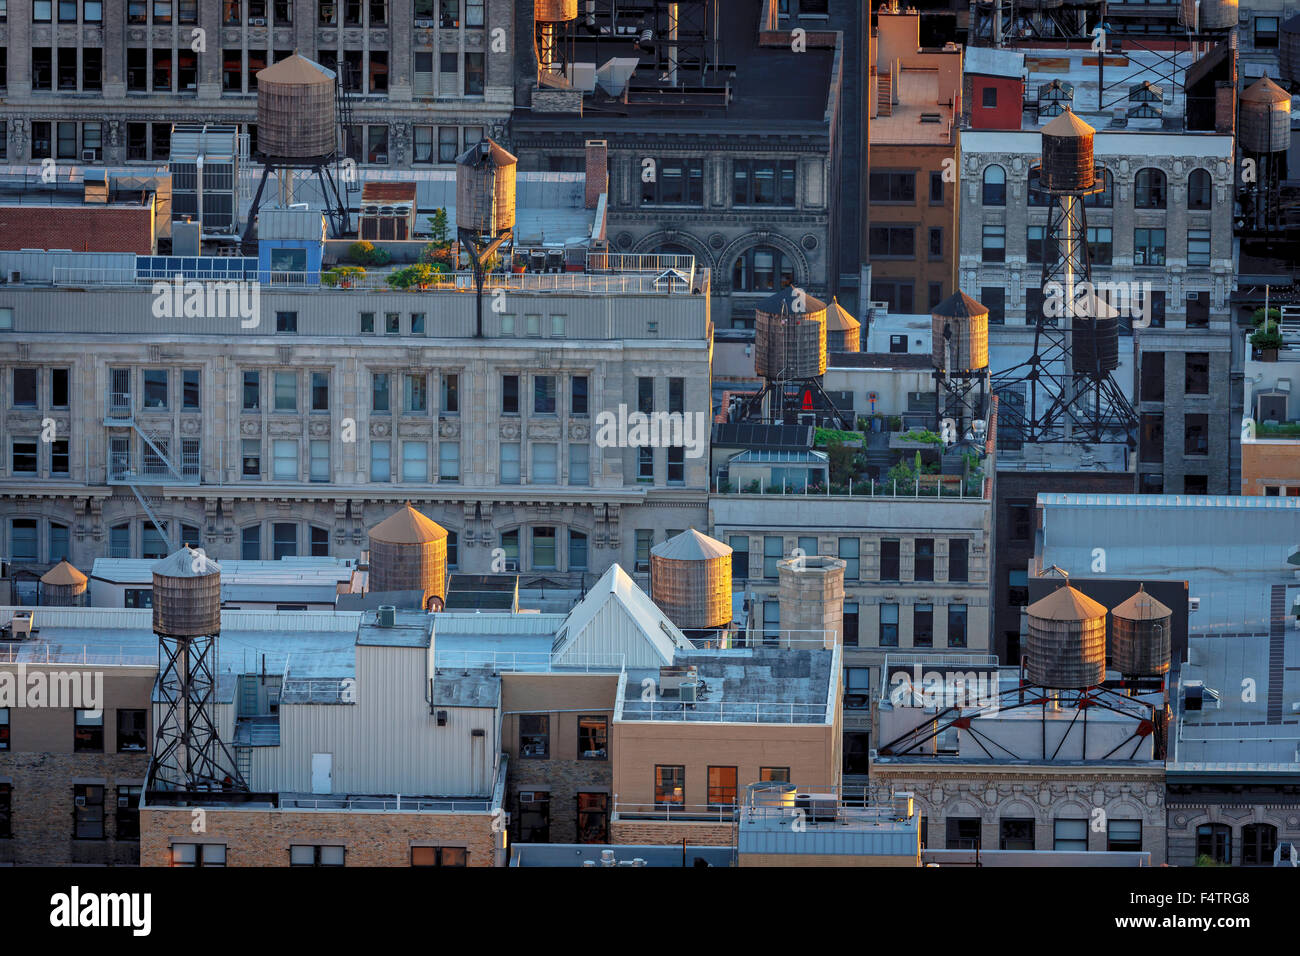 Late afternoon light over Chelsea building rooftops illuminating New York City typical water towers. Manhattan aerial - Stock Image